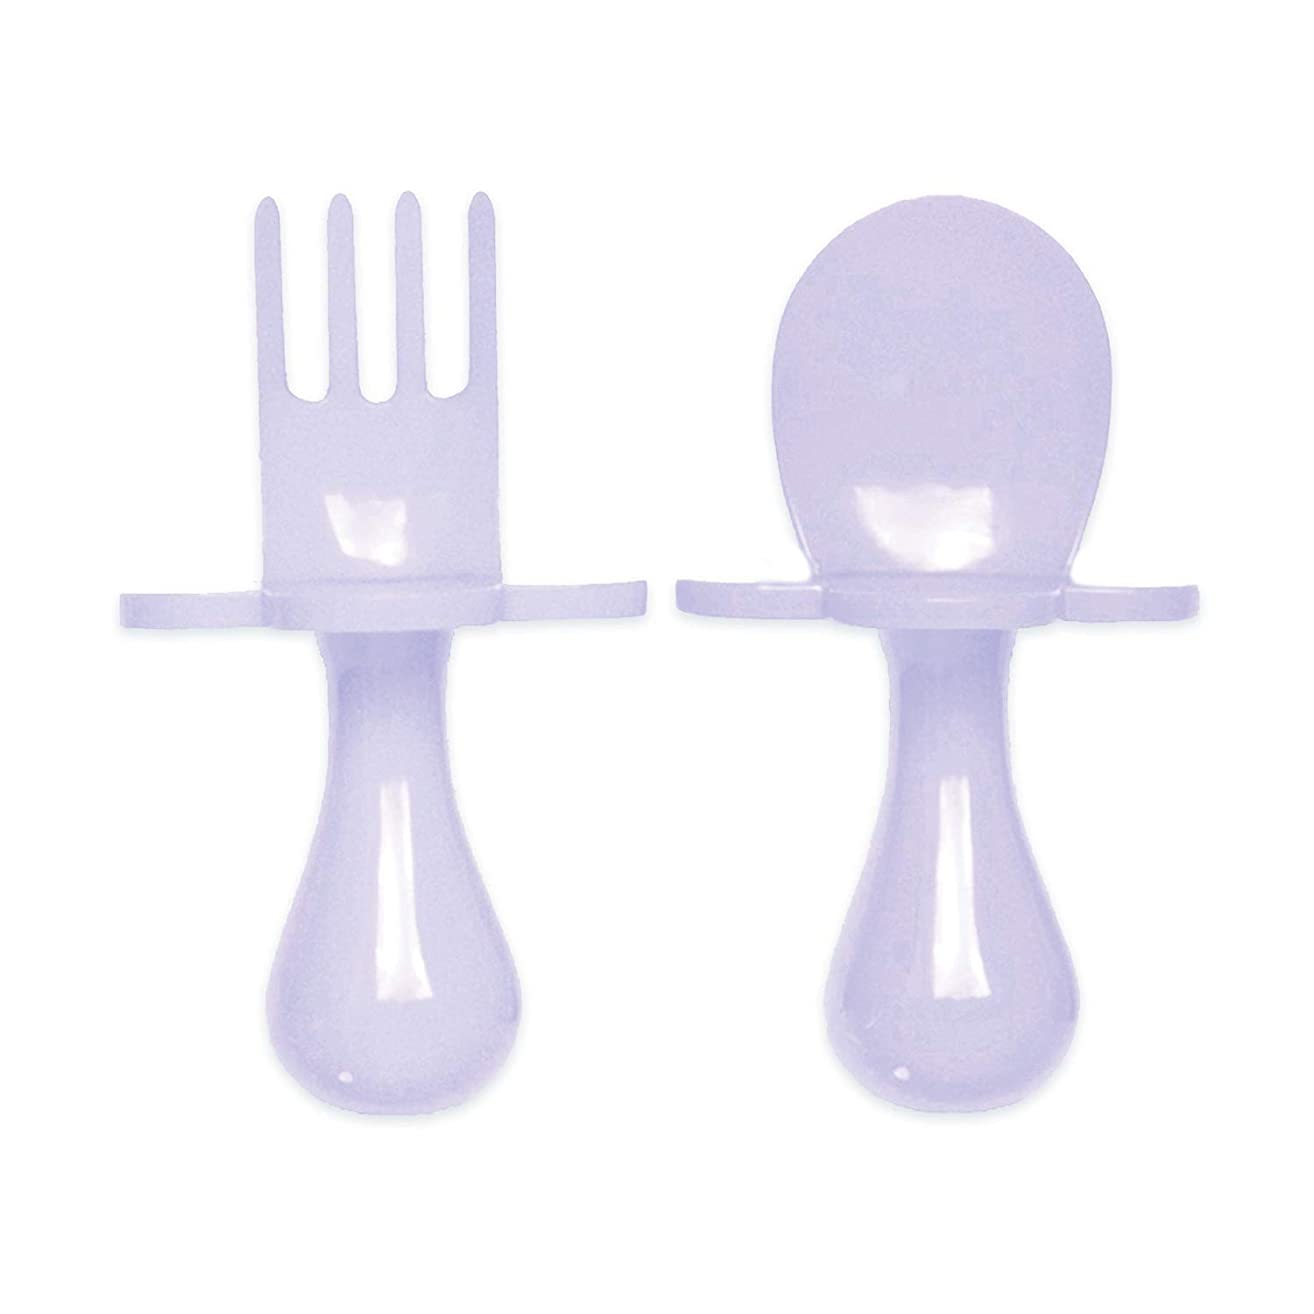 grabease First Training Self Feeding Utensil Set of Spoon and Fork for Toddler and Baby. BPA Free. to-go Pouch (Lavender)